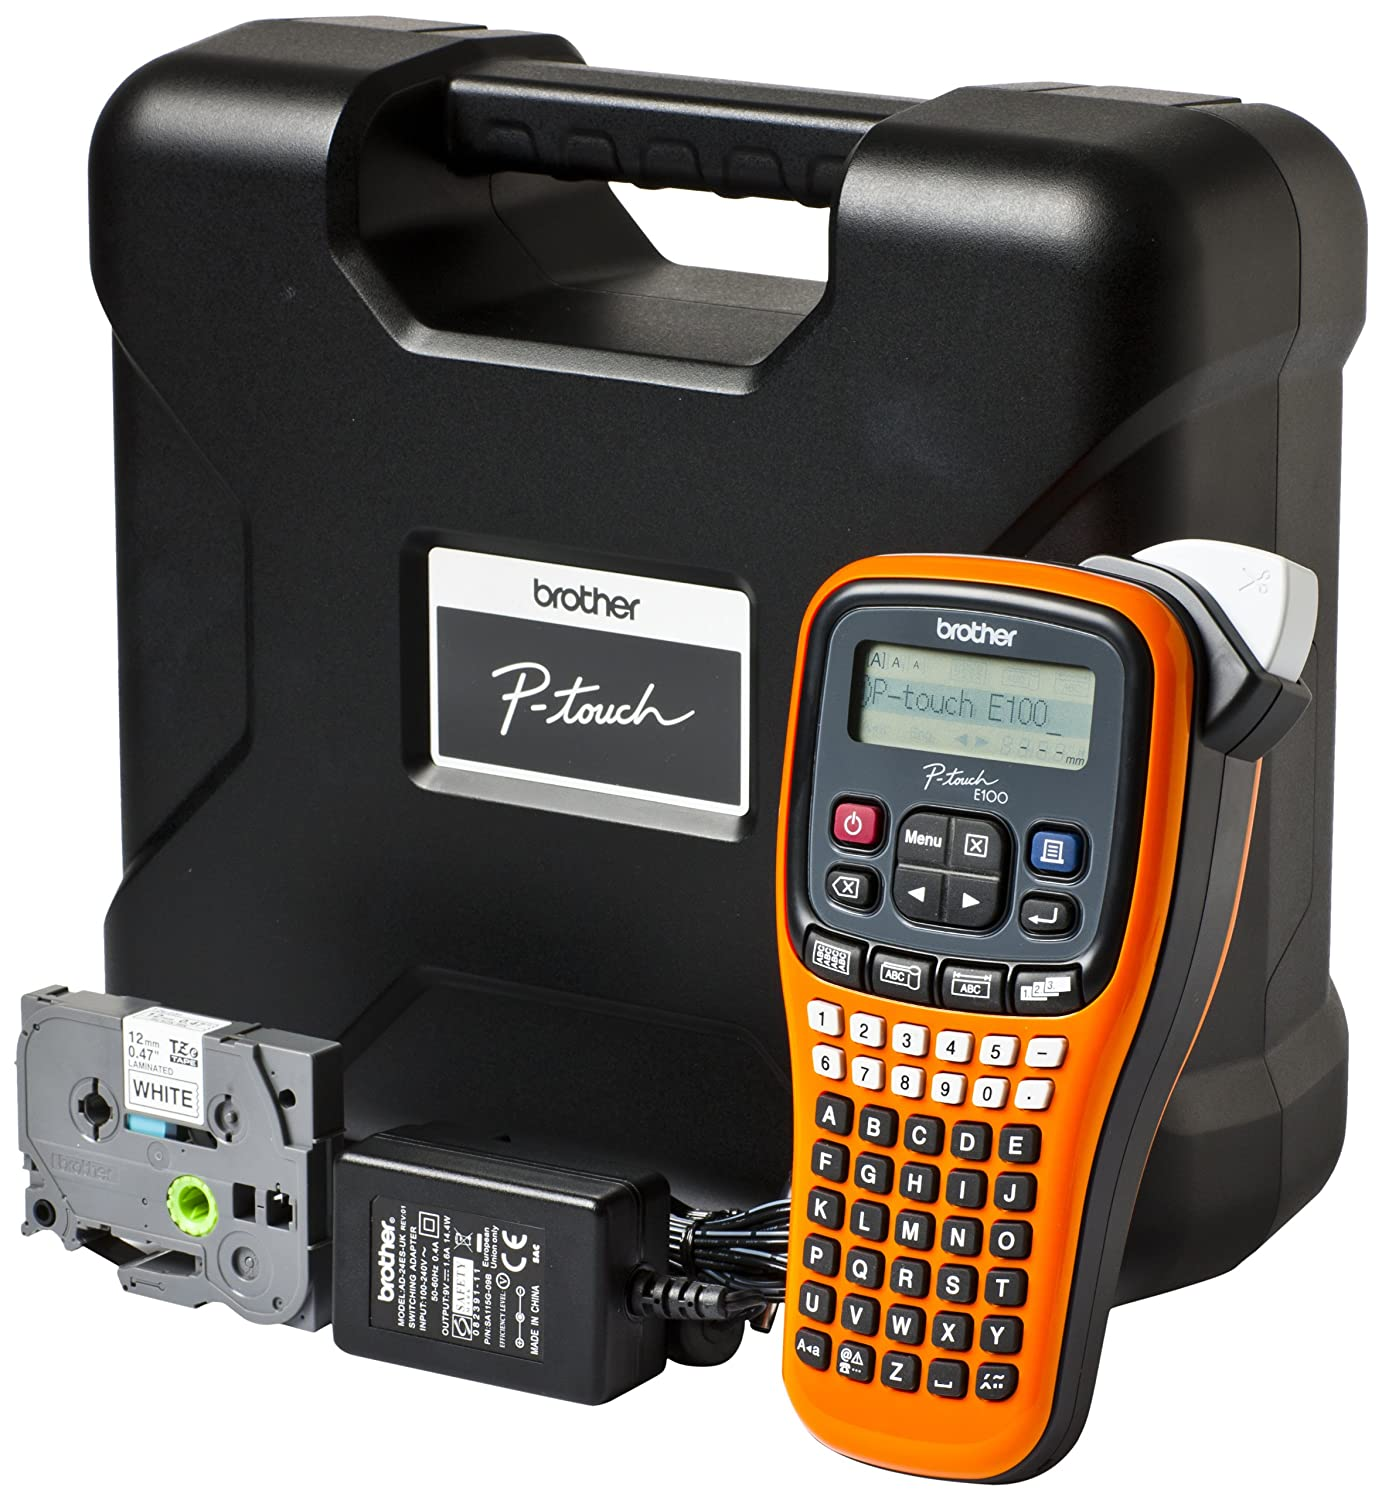 Brother PT-E100VP - Impresora de etiquetas (180 x 180 DPI, 9 mm, Transferencia térmica, 20 mm/seg, LCD, 720 carácteres) (importado) PT-E100VP-BROTHER_IT